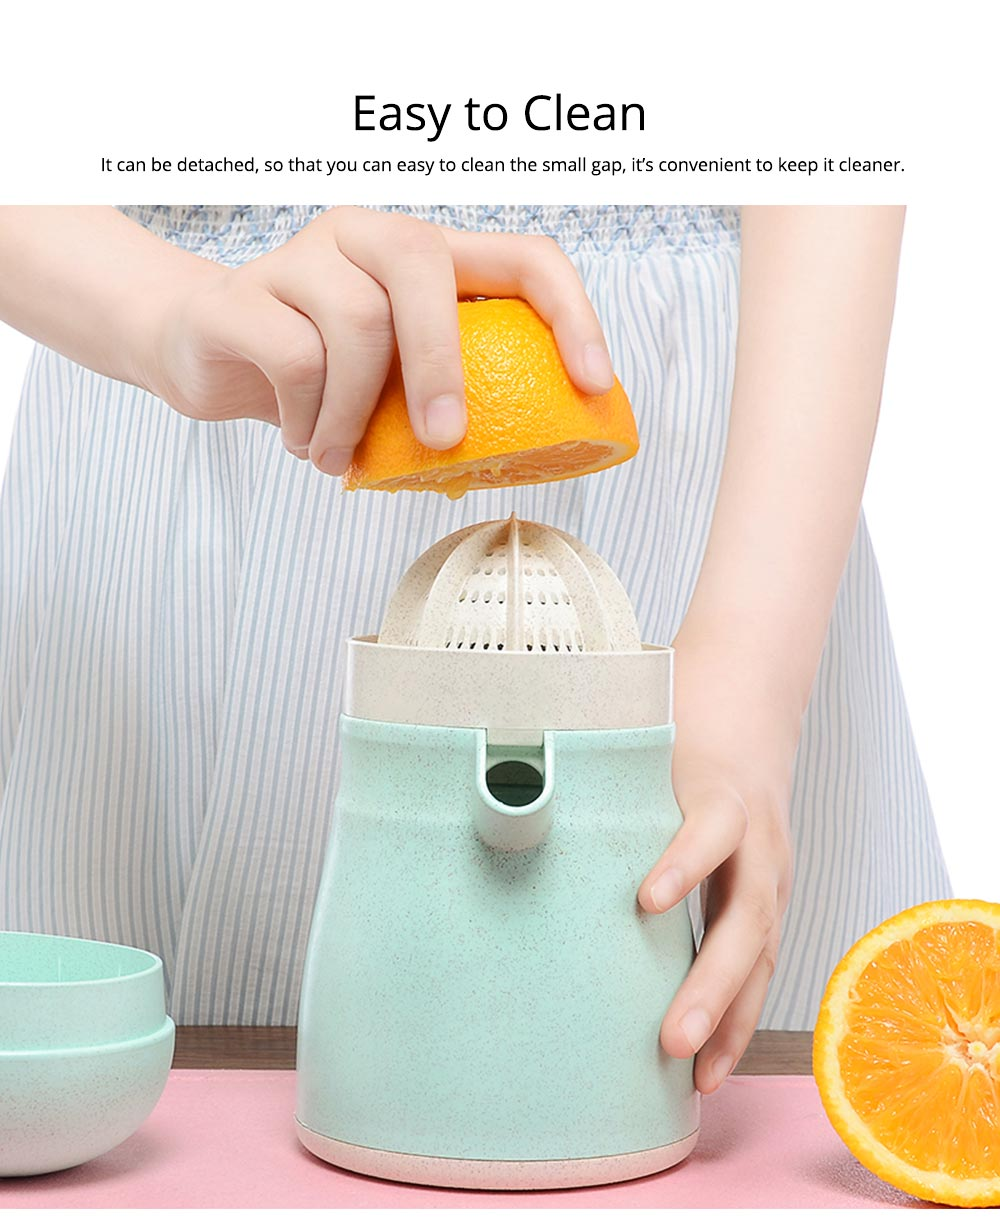 Manual Juicier Detachable Squeezer Press Fruit for Home-usage Hand-operate Juice Machine 5